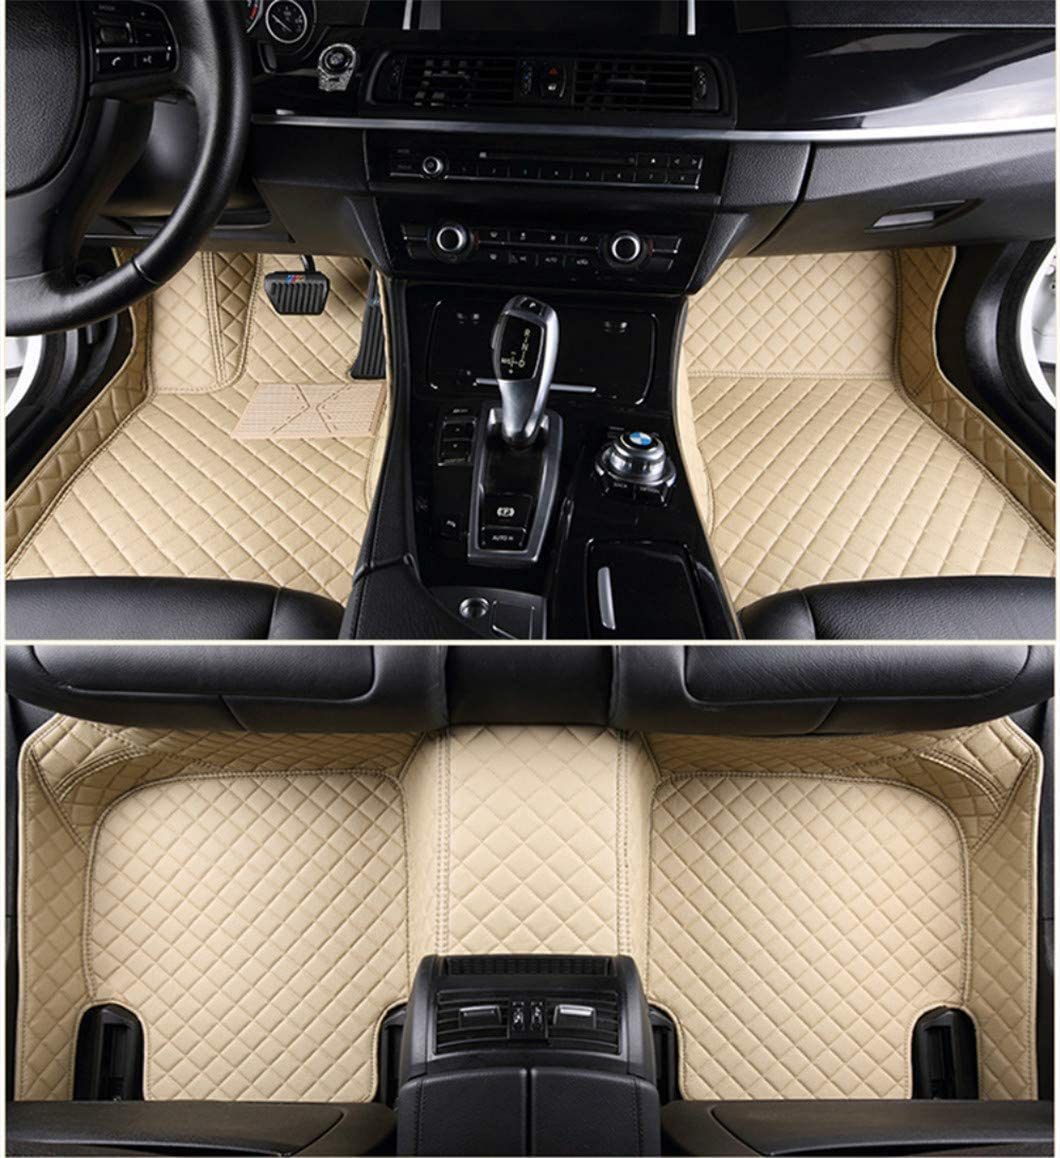 Jiahe for Volvo C30 2006-2013 Car Floor Mats Full Covered Advanced Performance Leather Carpet Auto All Weather Protection Front & Rear Liner Set Beige